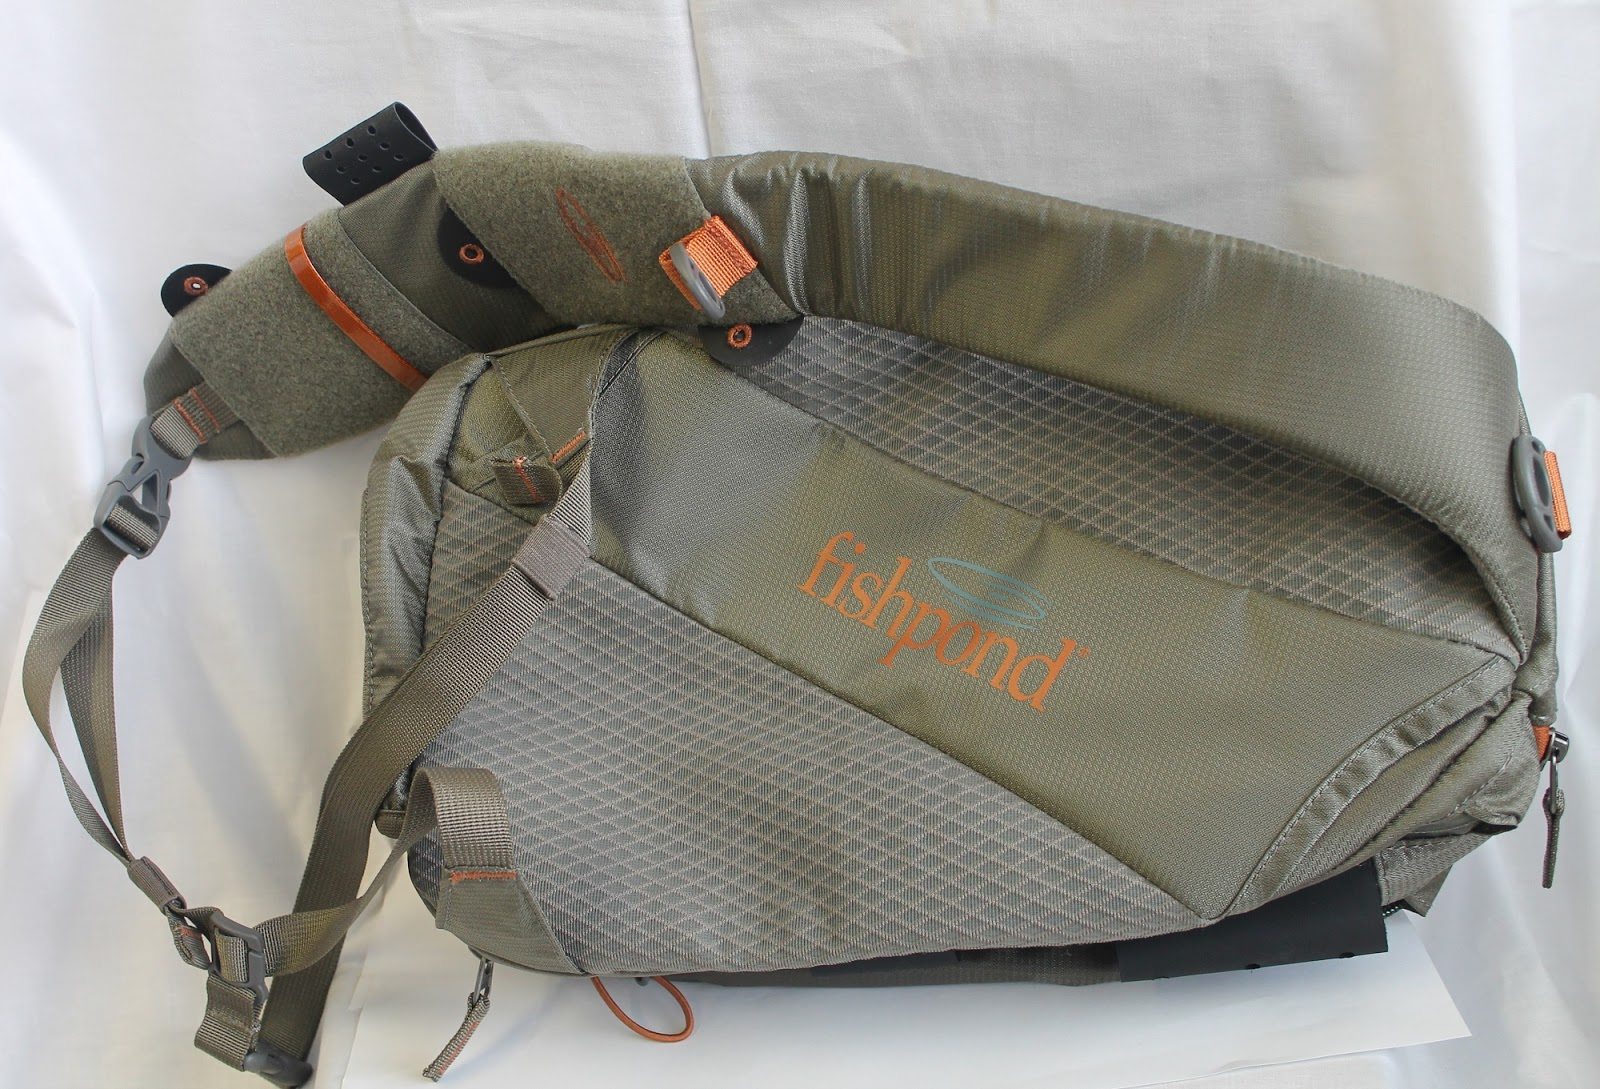 Gorge fly shop blog sling pack showdown for Fly fishing sling pack